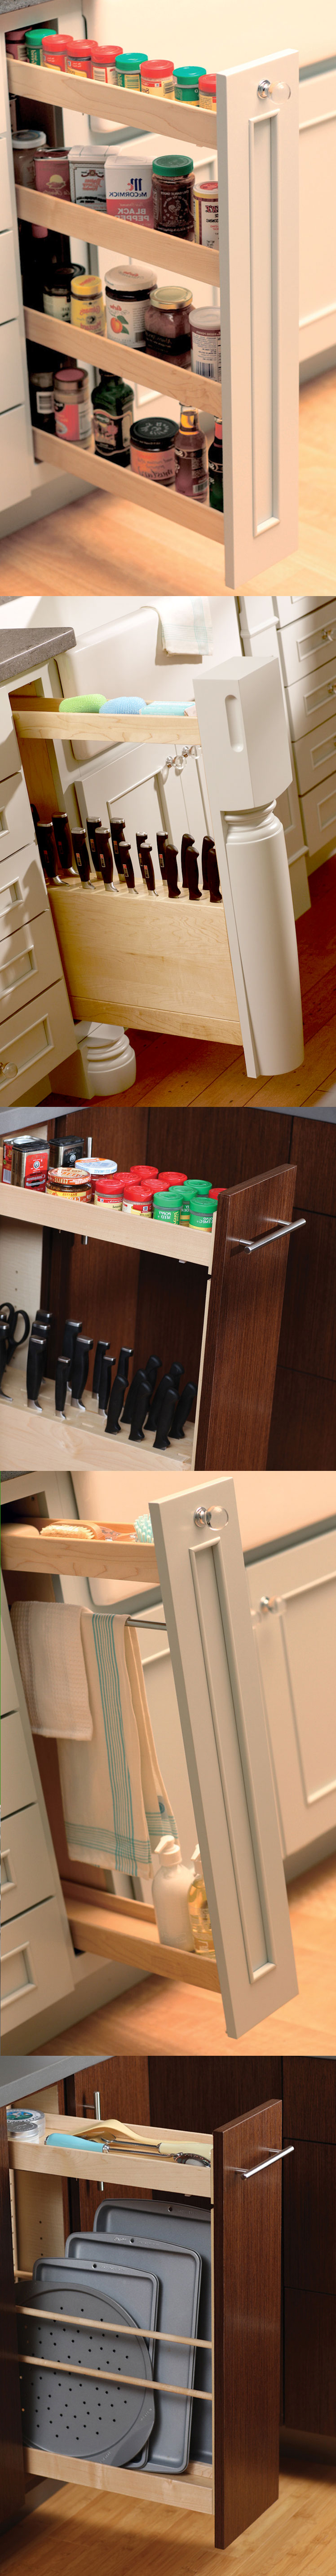 Thin cabinet storage ideas and accessories for small - Kitchen storage solutions small spaces ...